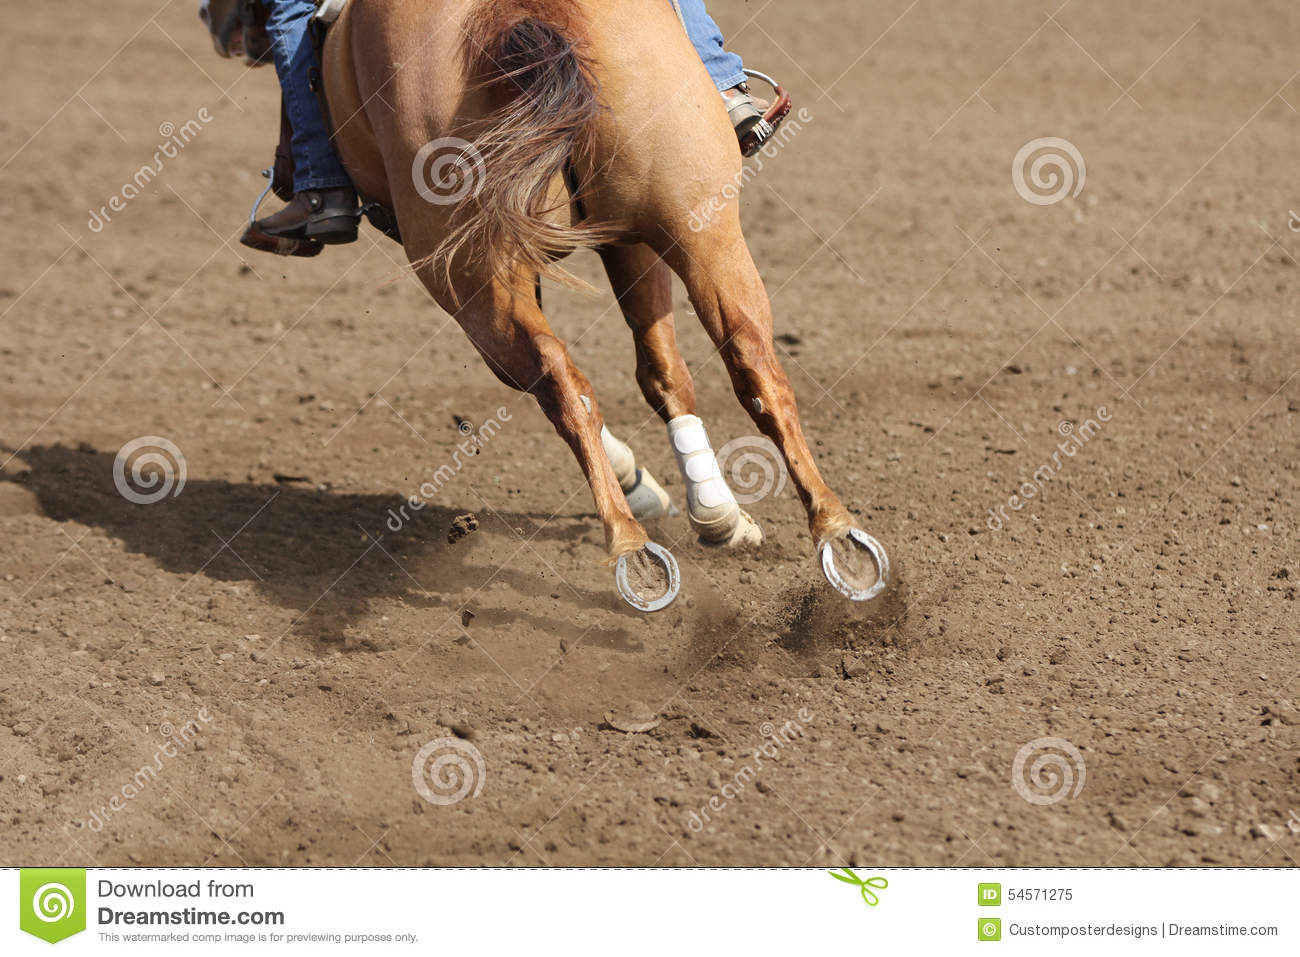 Download A Close Up View Of A Fast Running Horse And Flying Dirt. Stock Image - Image of dirt, competing: 54571275